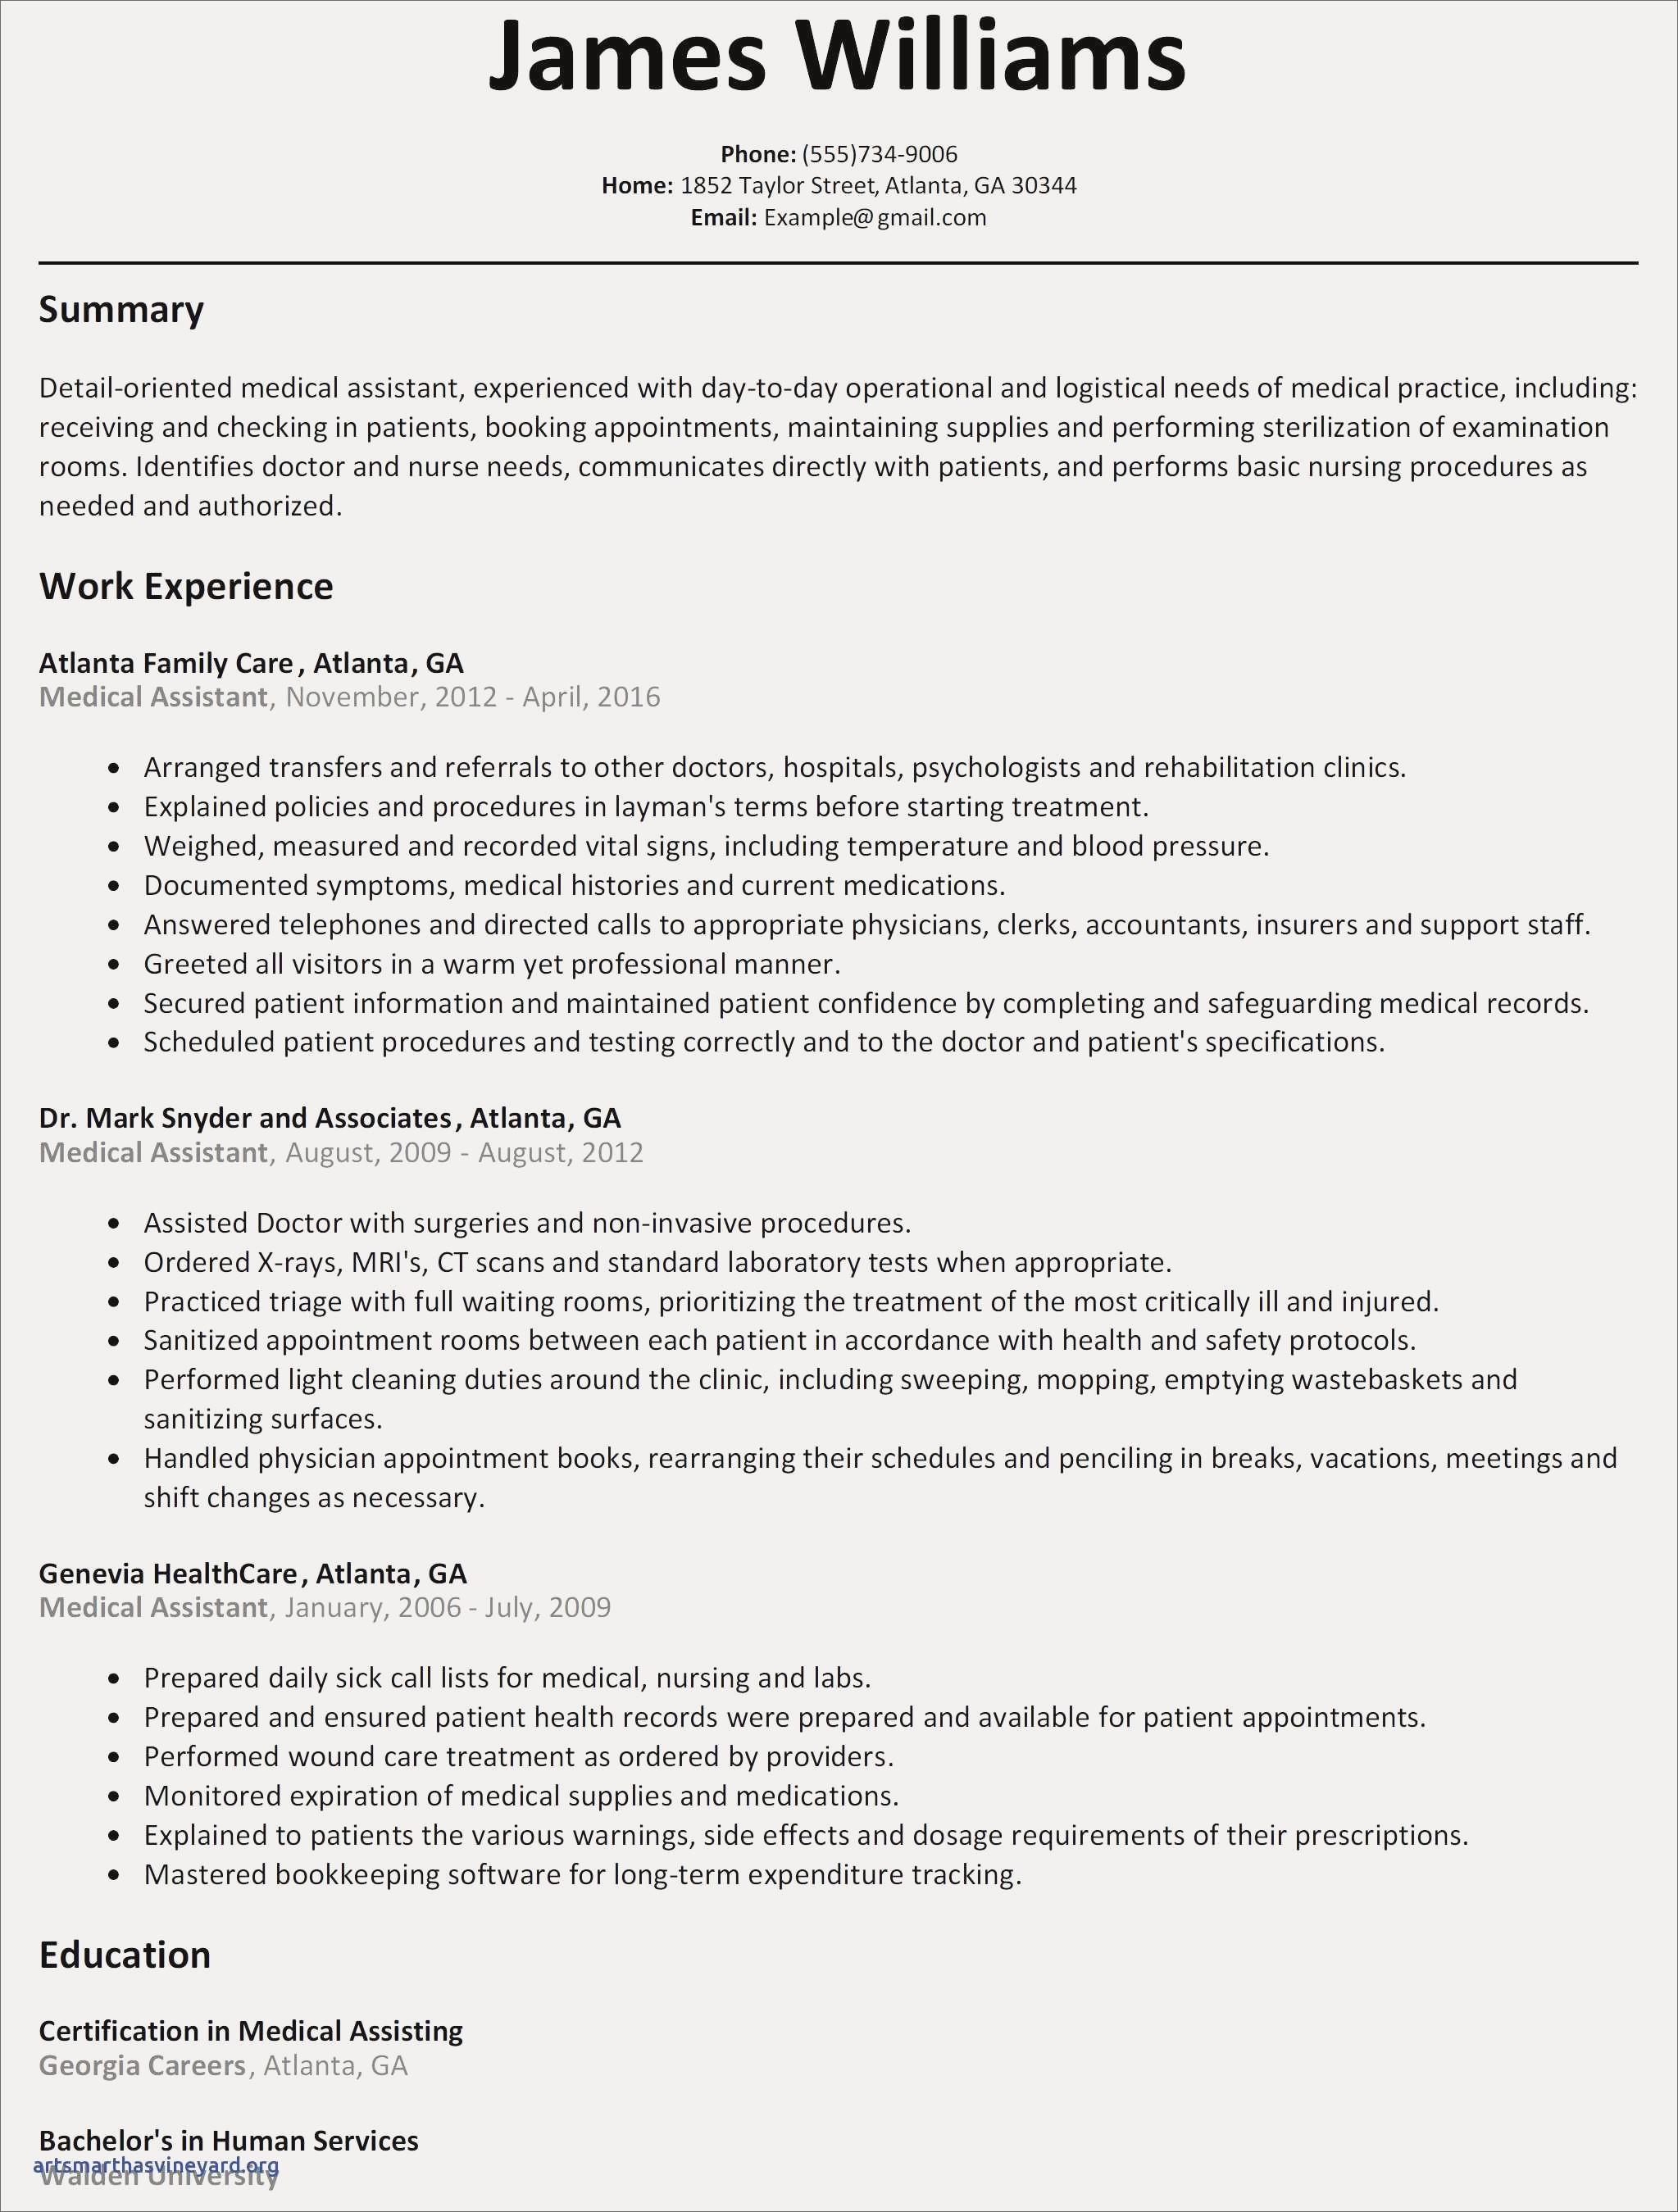 Retail Resume Template Free - Human Services Resume Samples Best Retail Resume Sample Awesome